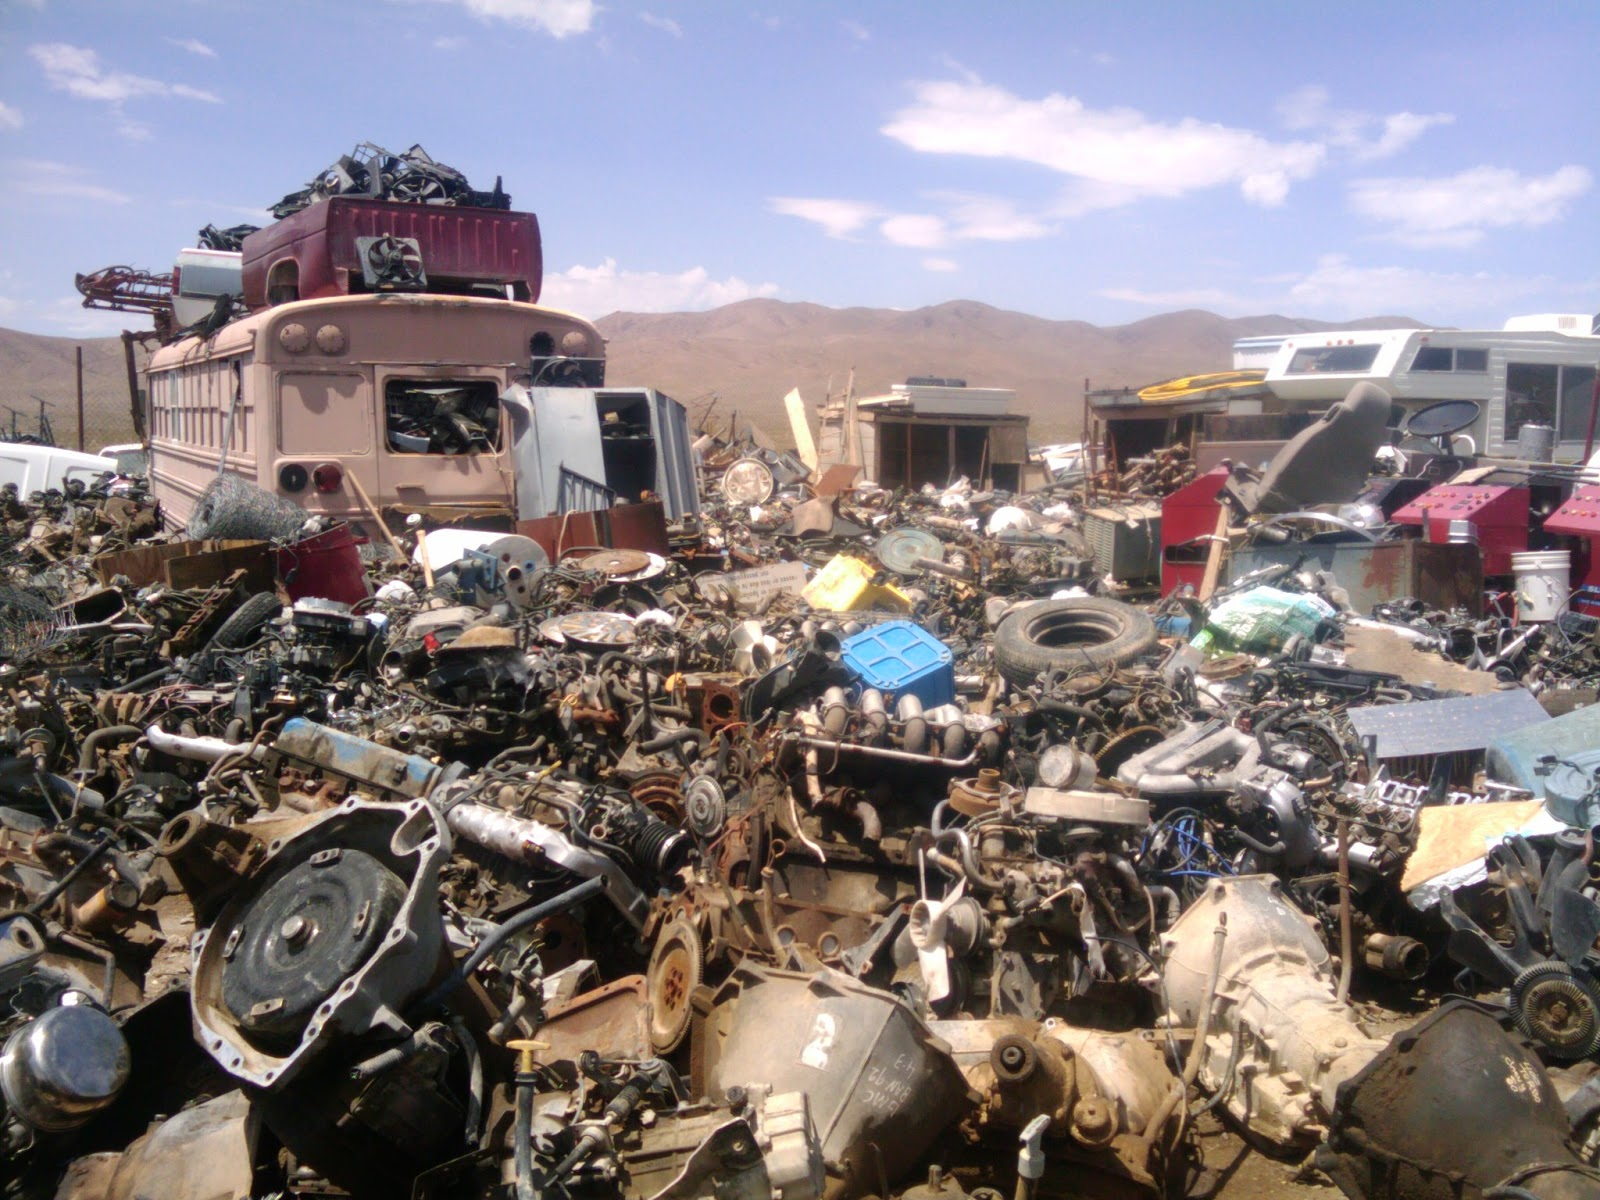 Junkyard Blues on 1995 buick riviera motor